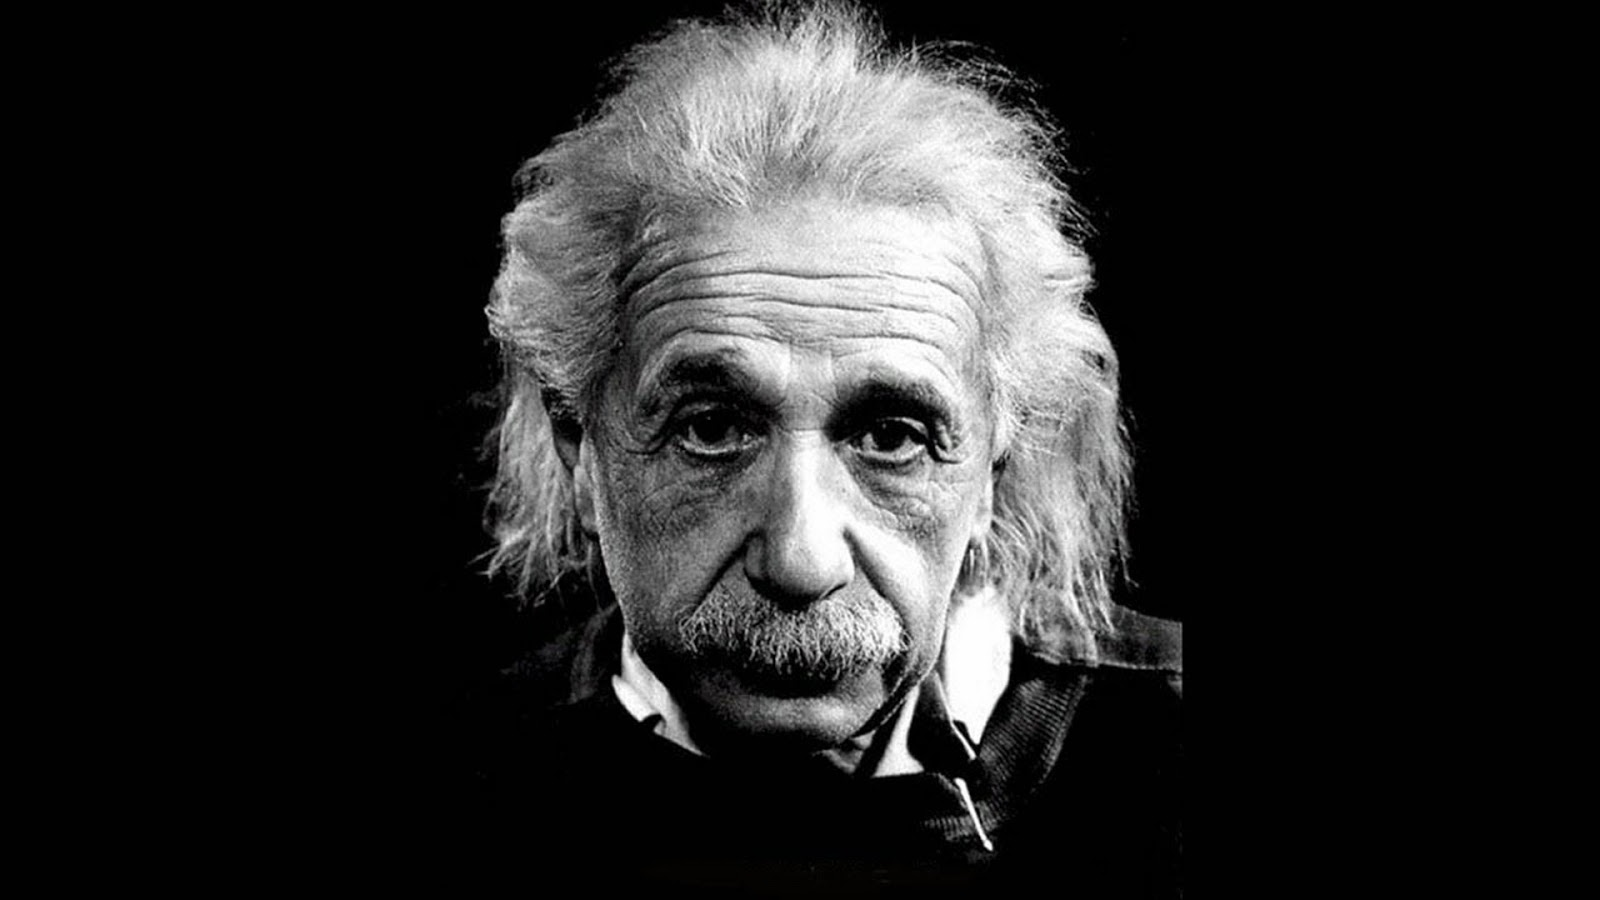 """""""The significant problems we face today cannot be solved at the same level of thinking we were at when we created them."""" - Albert Einstein (1879-1955), Physicist and Nobel Laureate"""